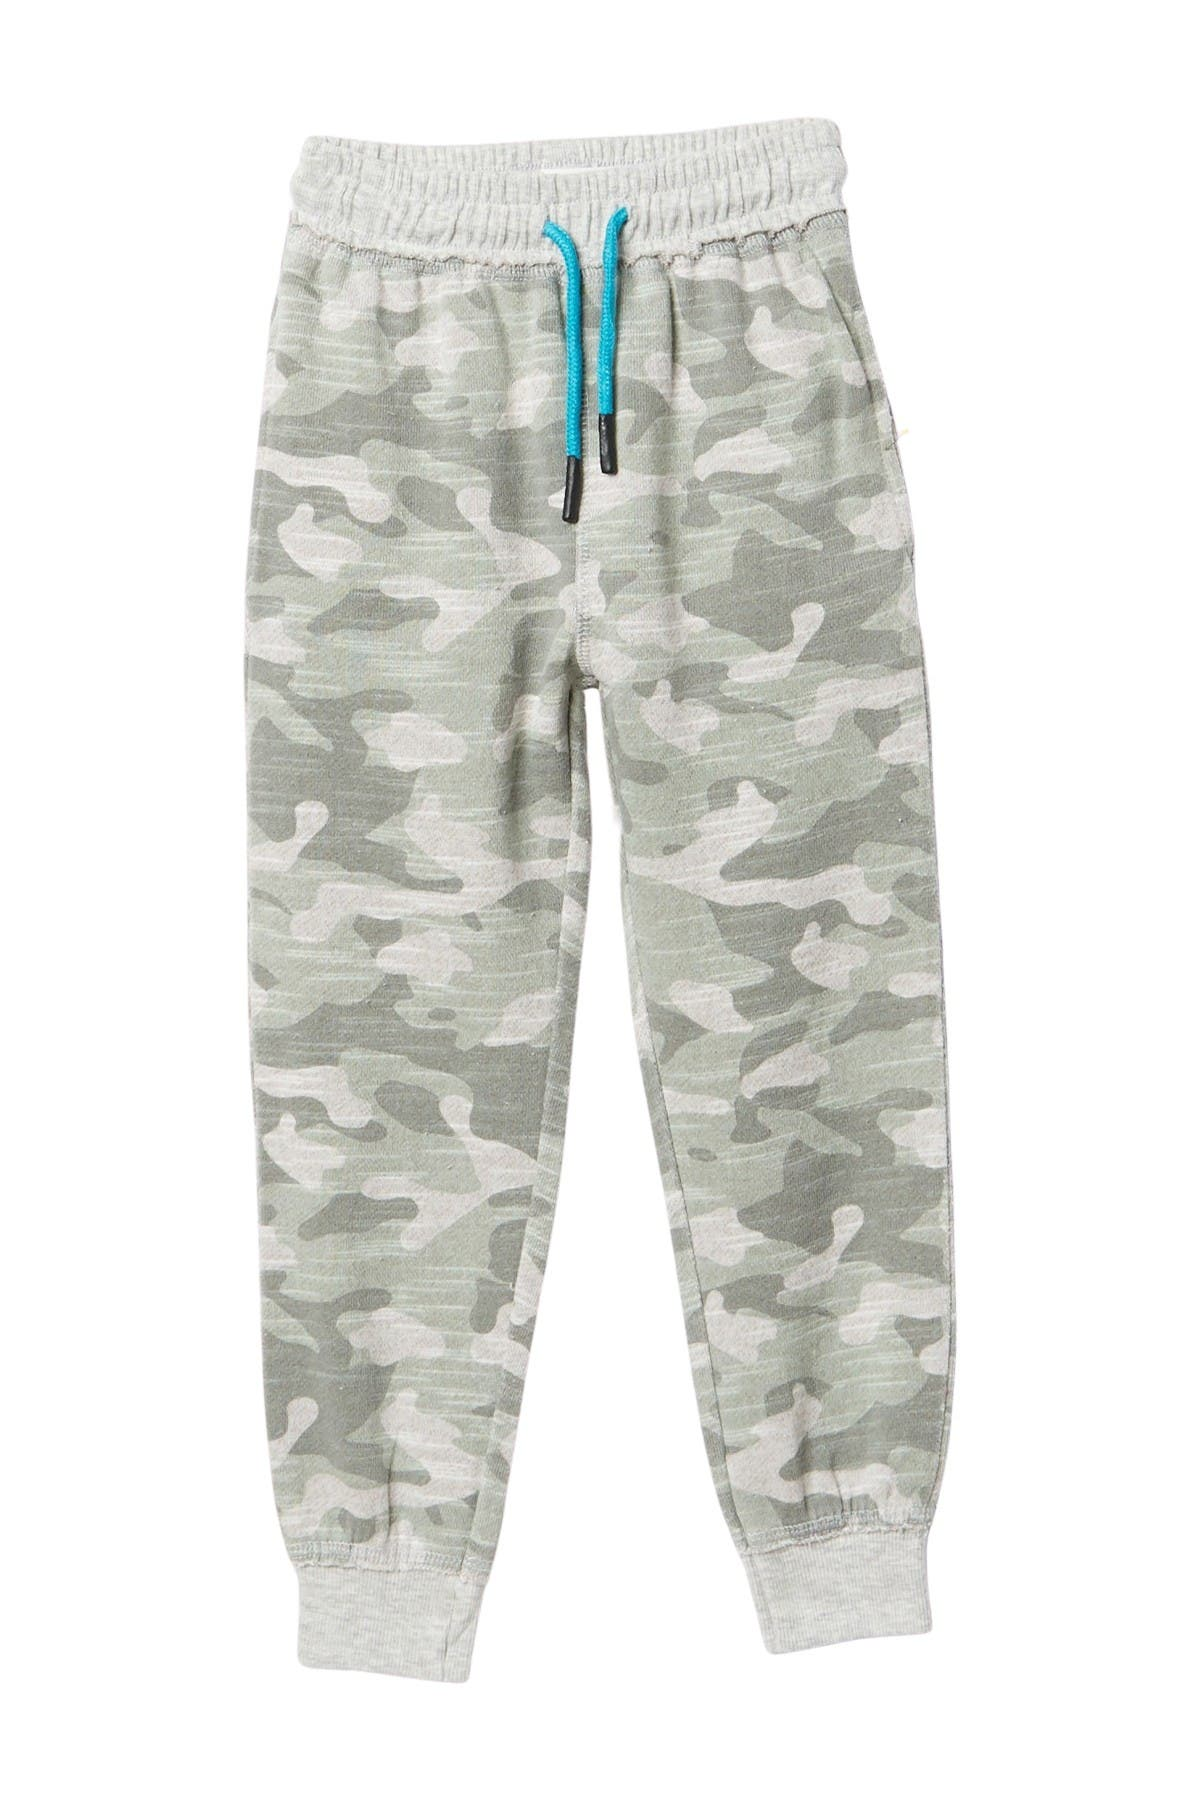 Image of Sovereign Code Beemer Camo Joggers